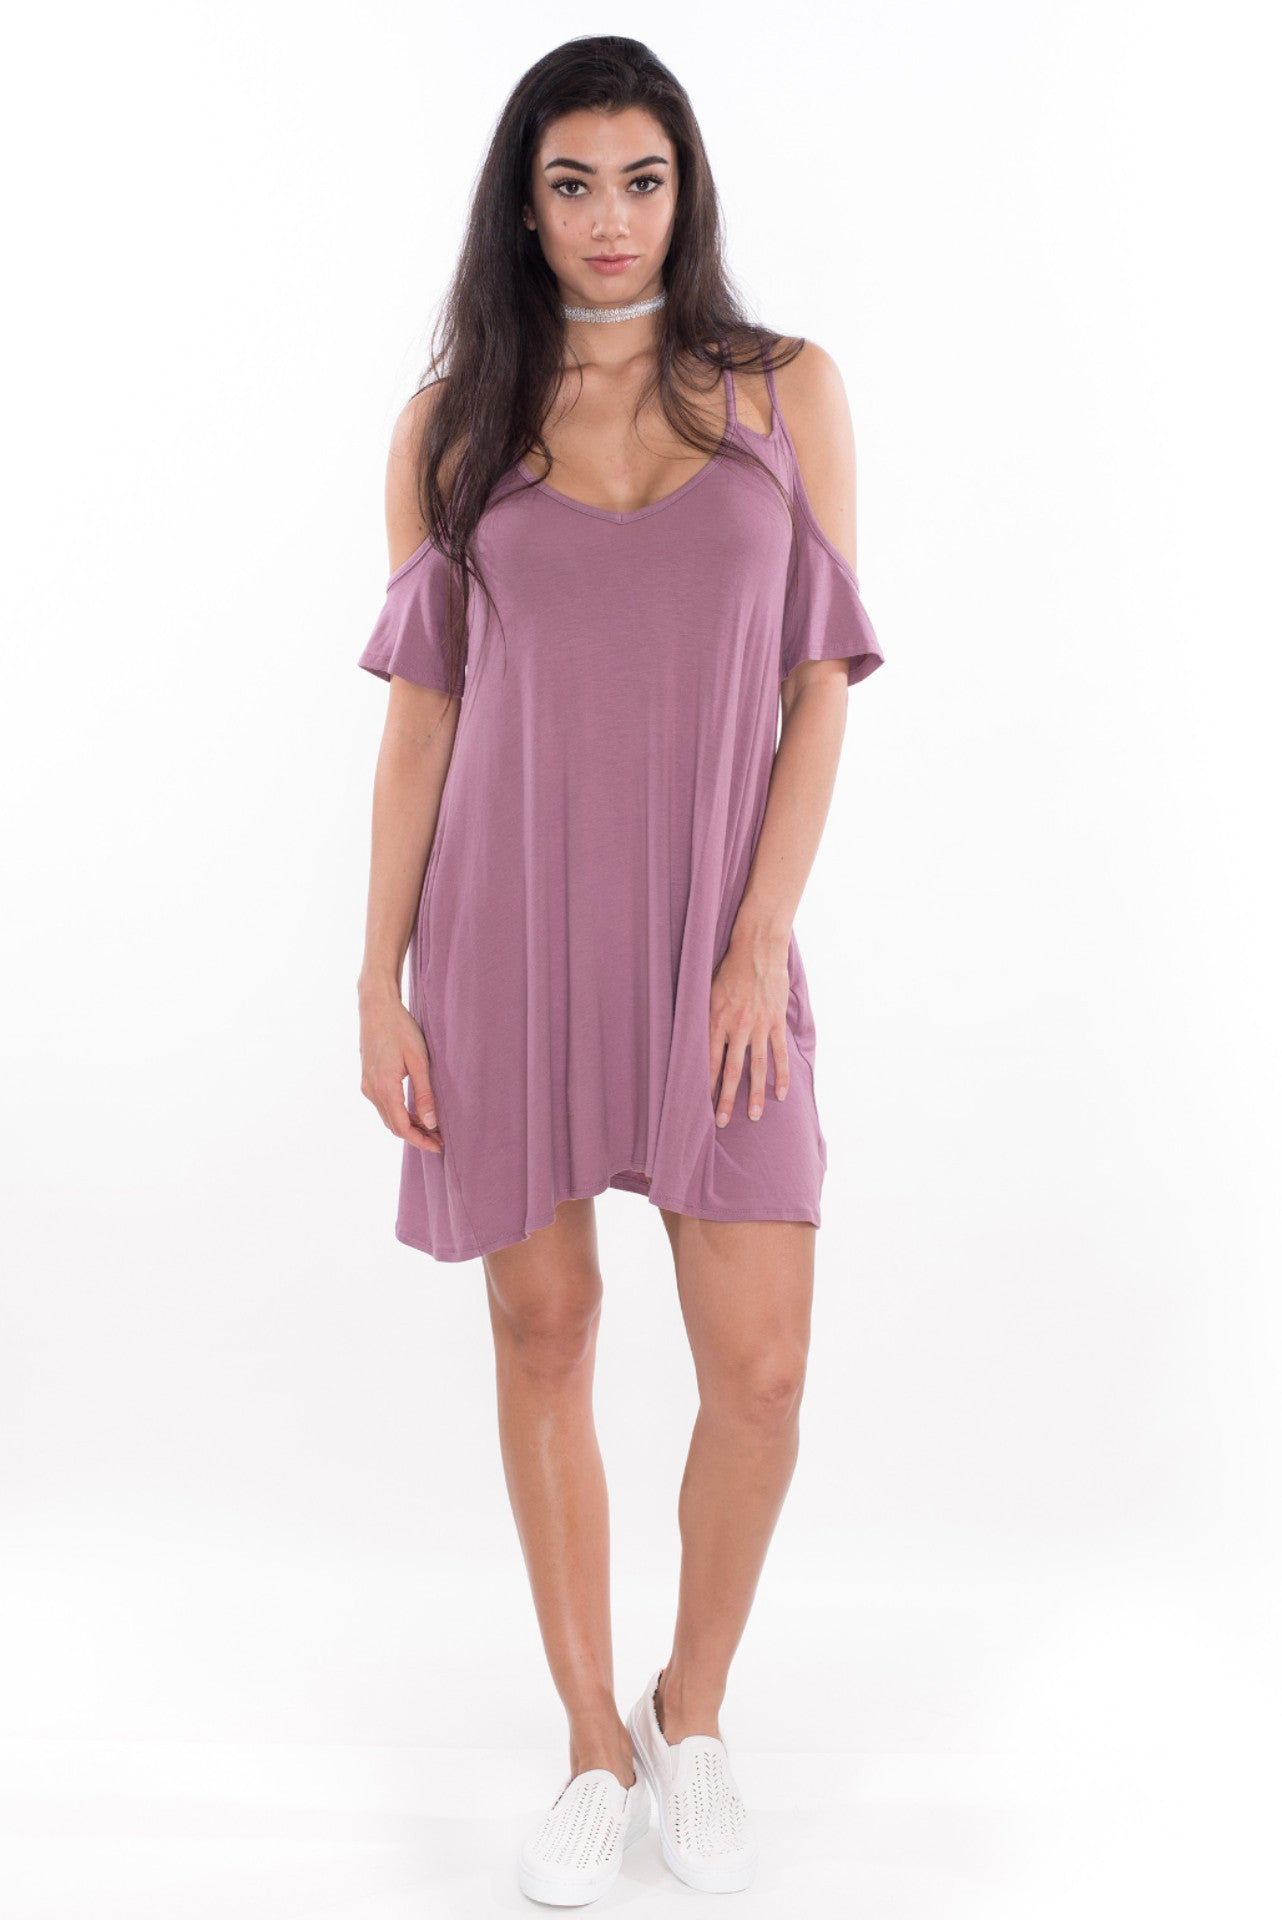 mauve shirt dress